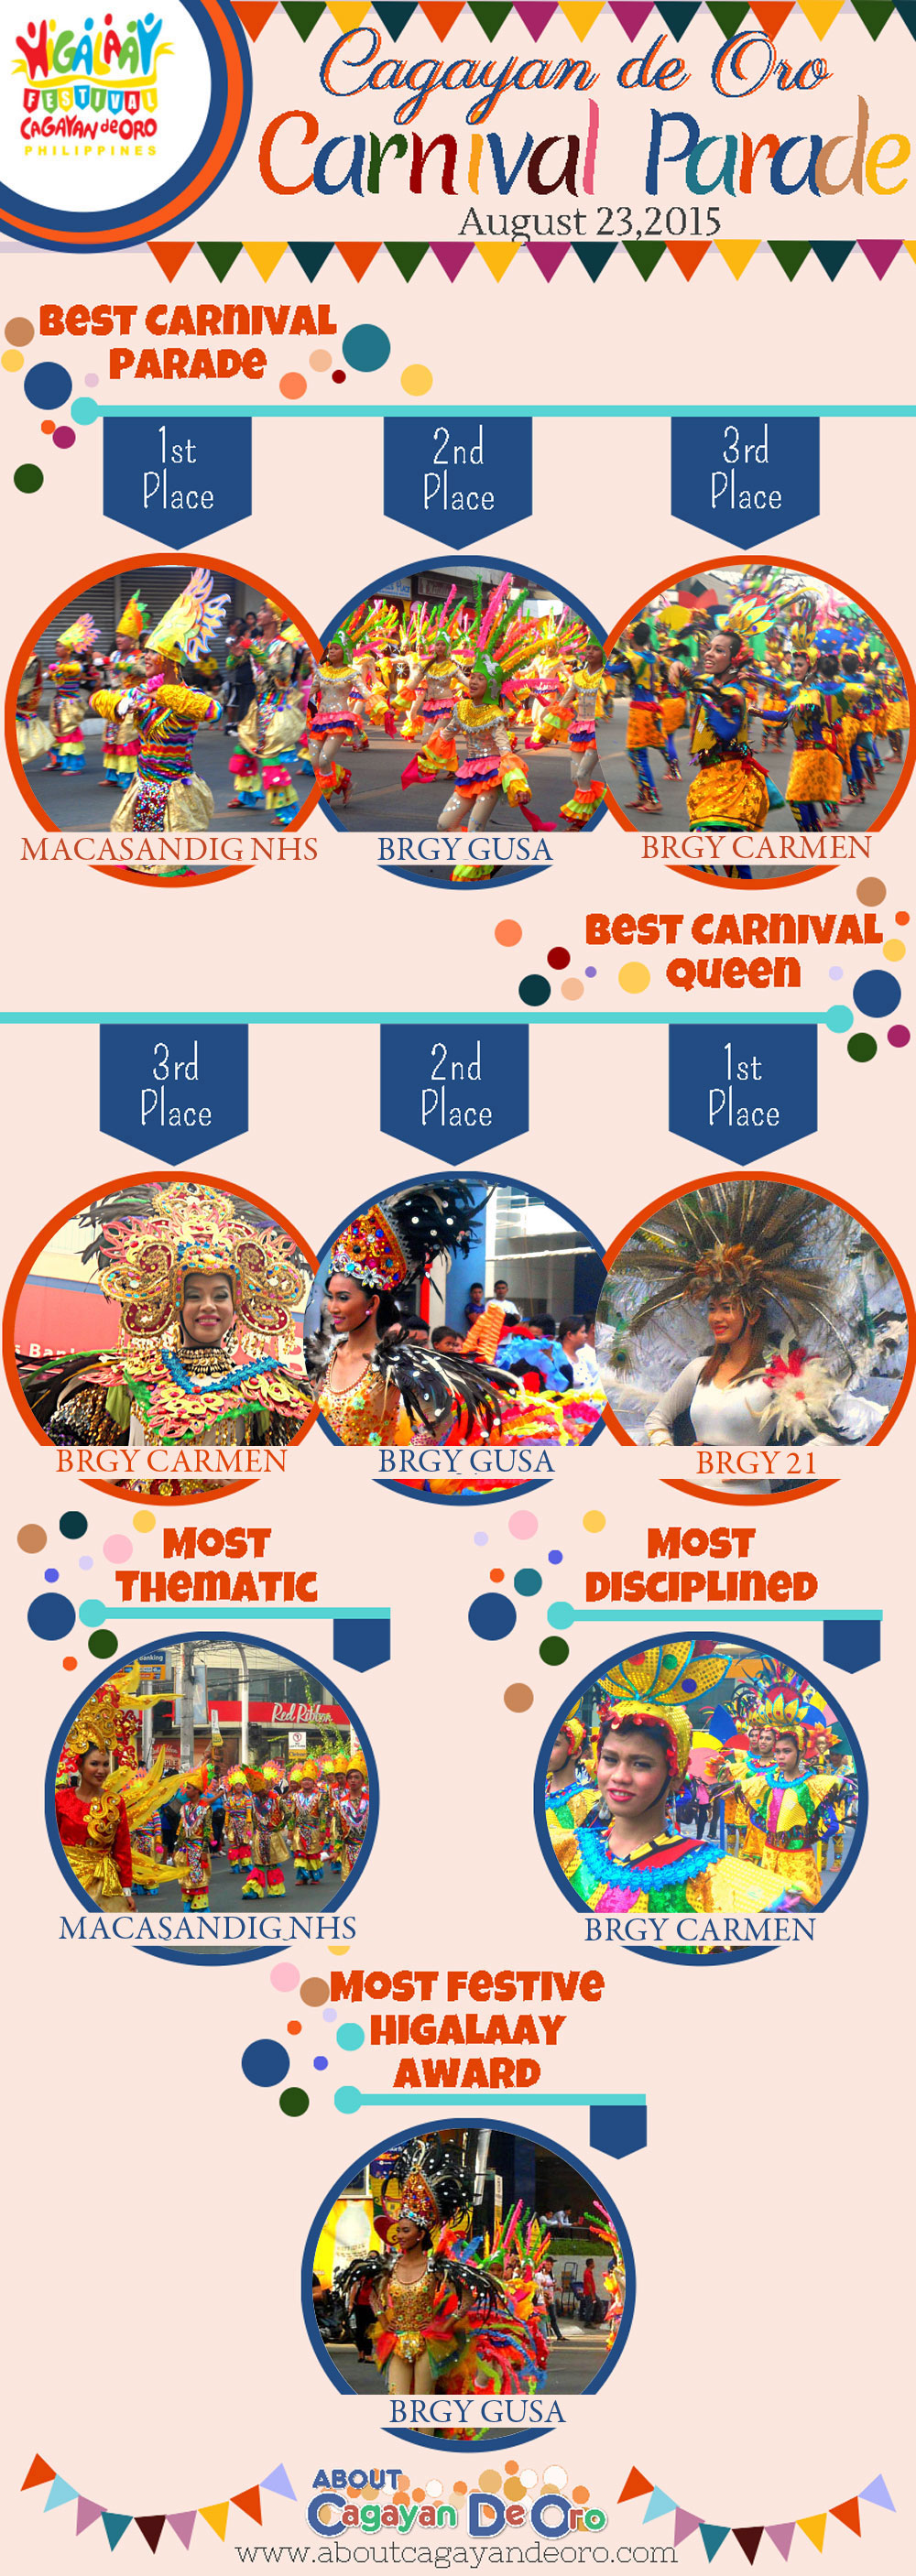 Cagayan de Oro Carnival Parade 2015 List of Winners